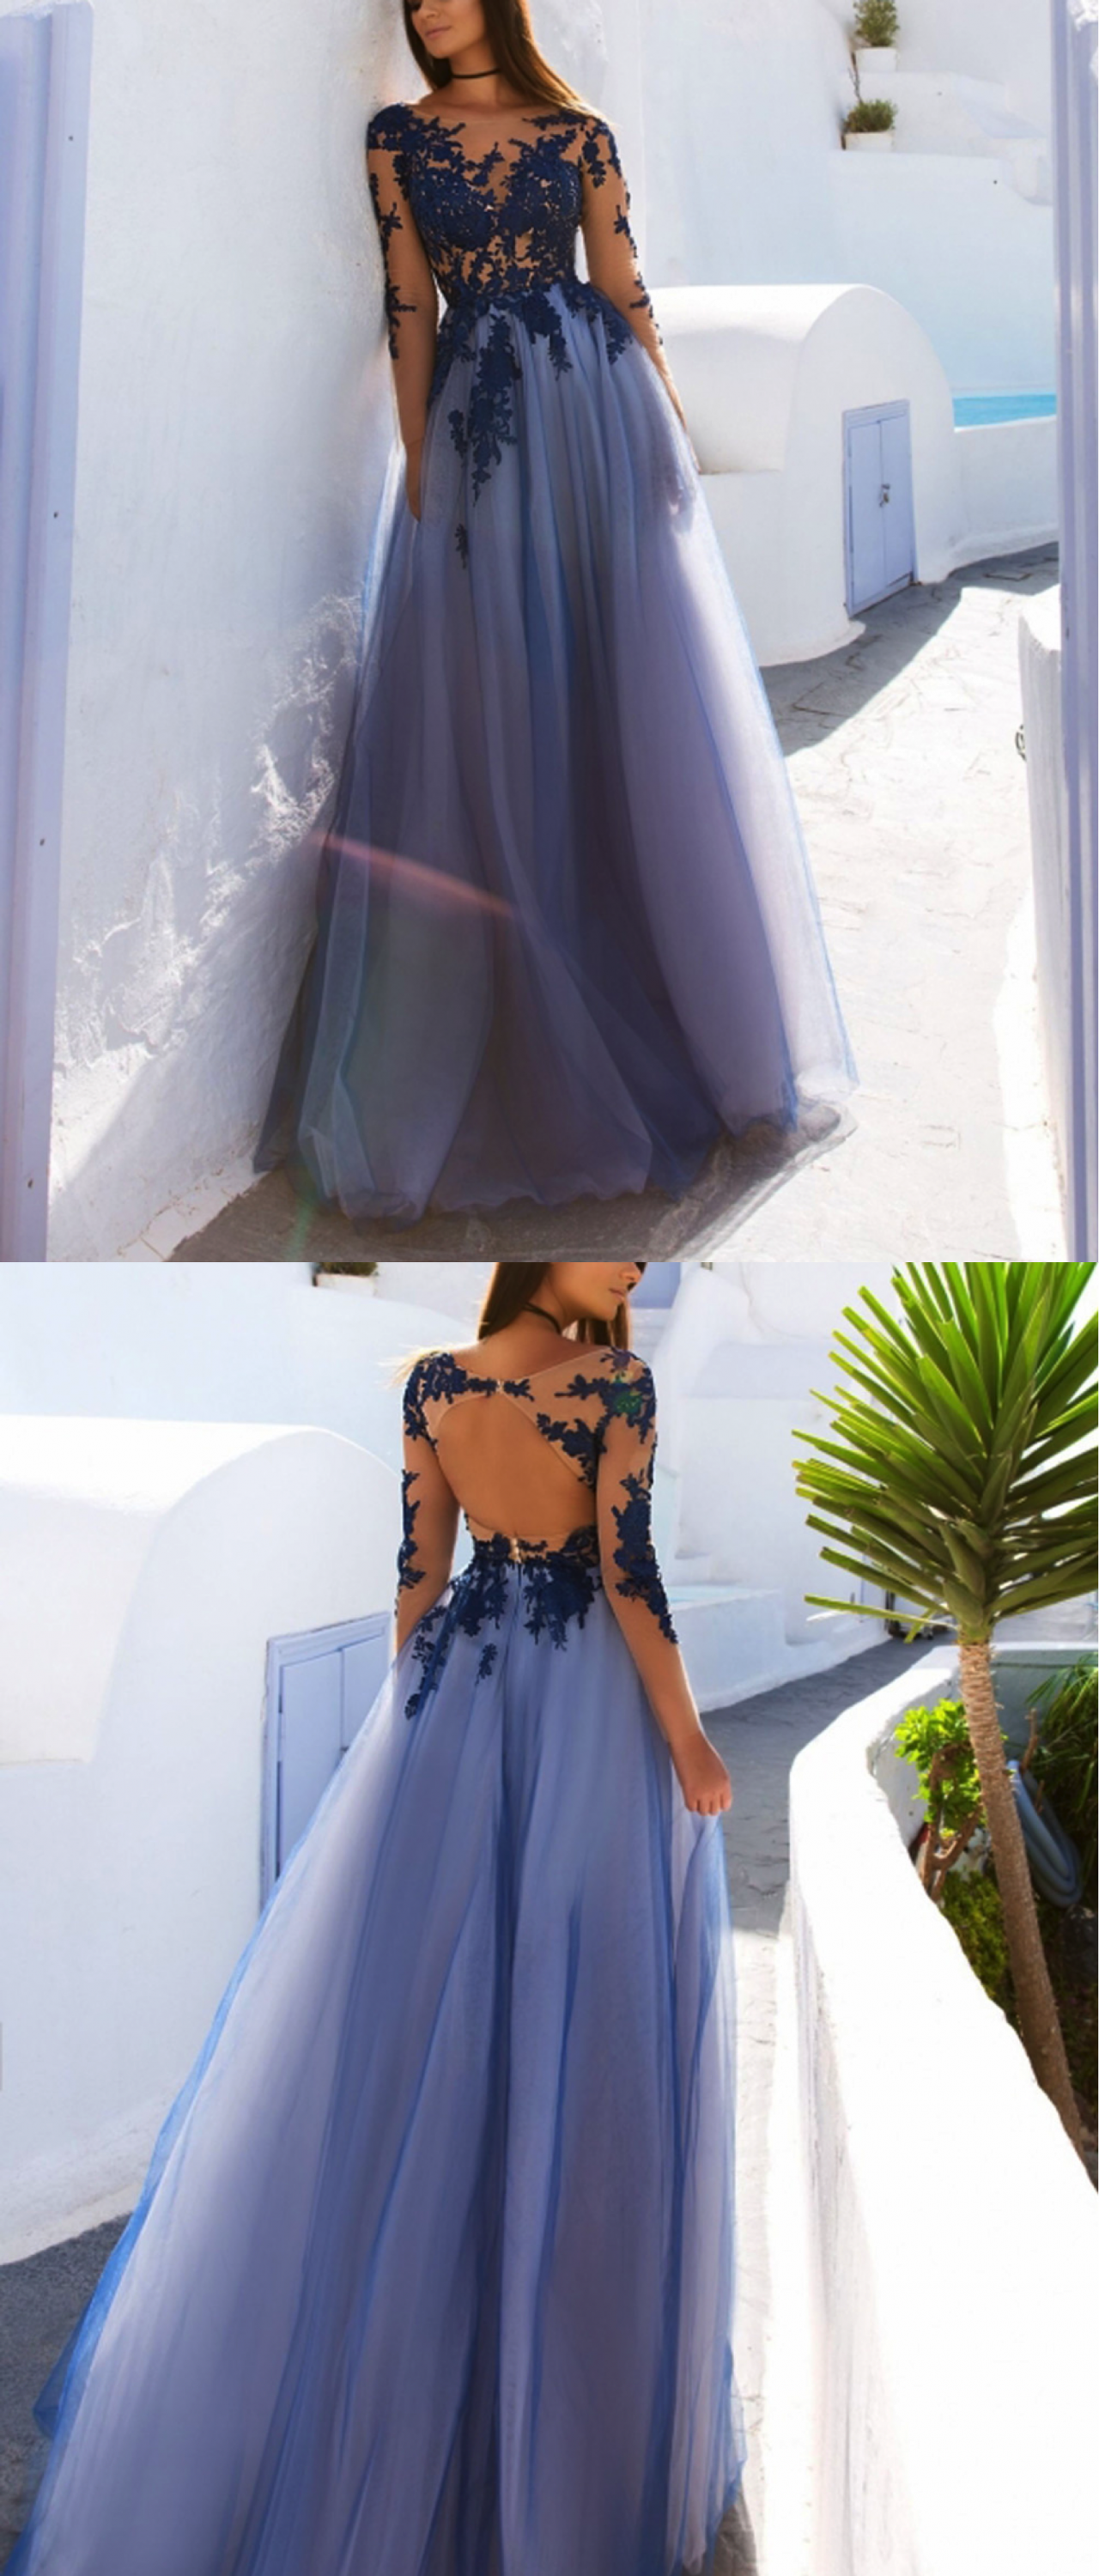 Charming long prom dress applique tulle long sleeve aline formal